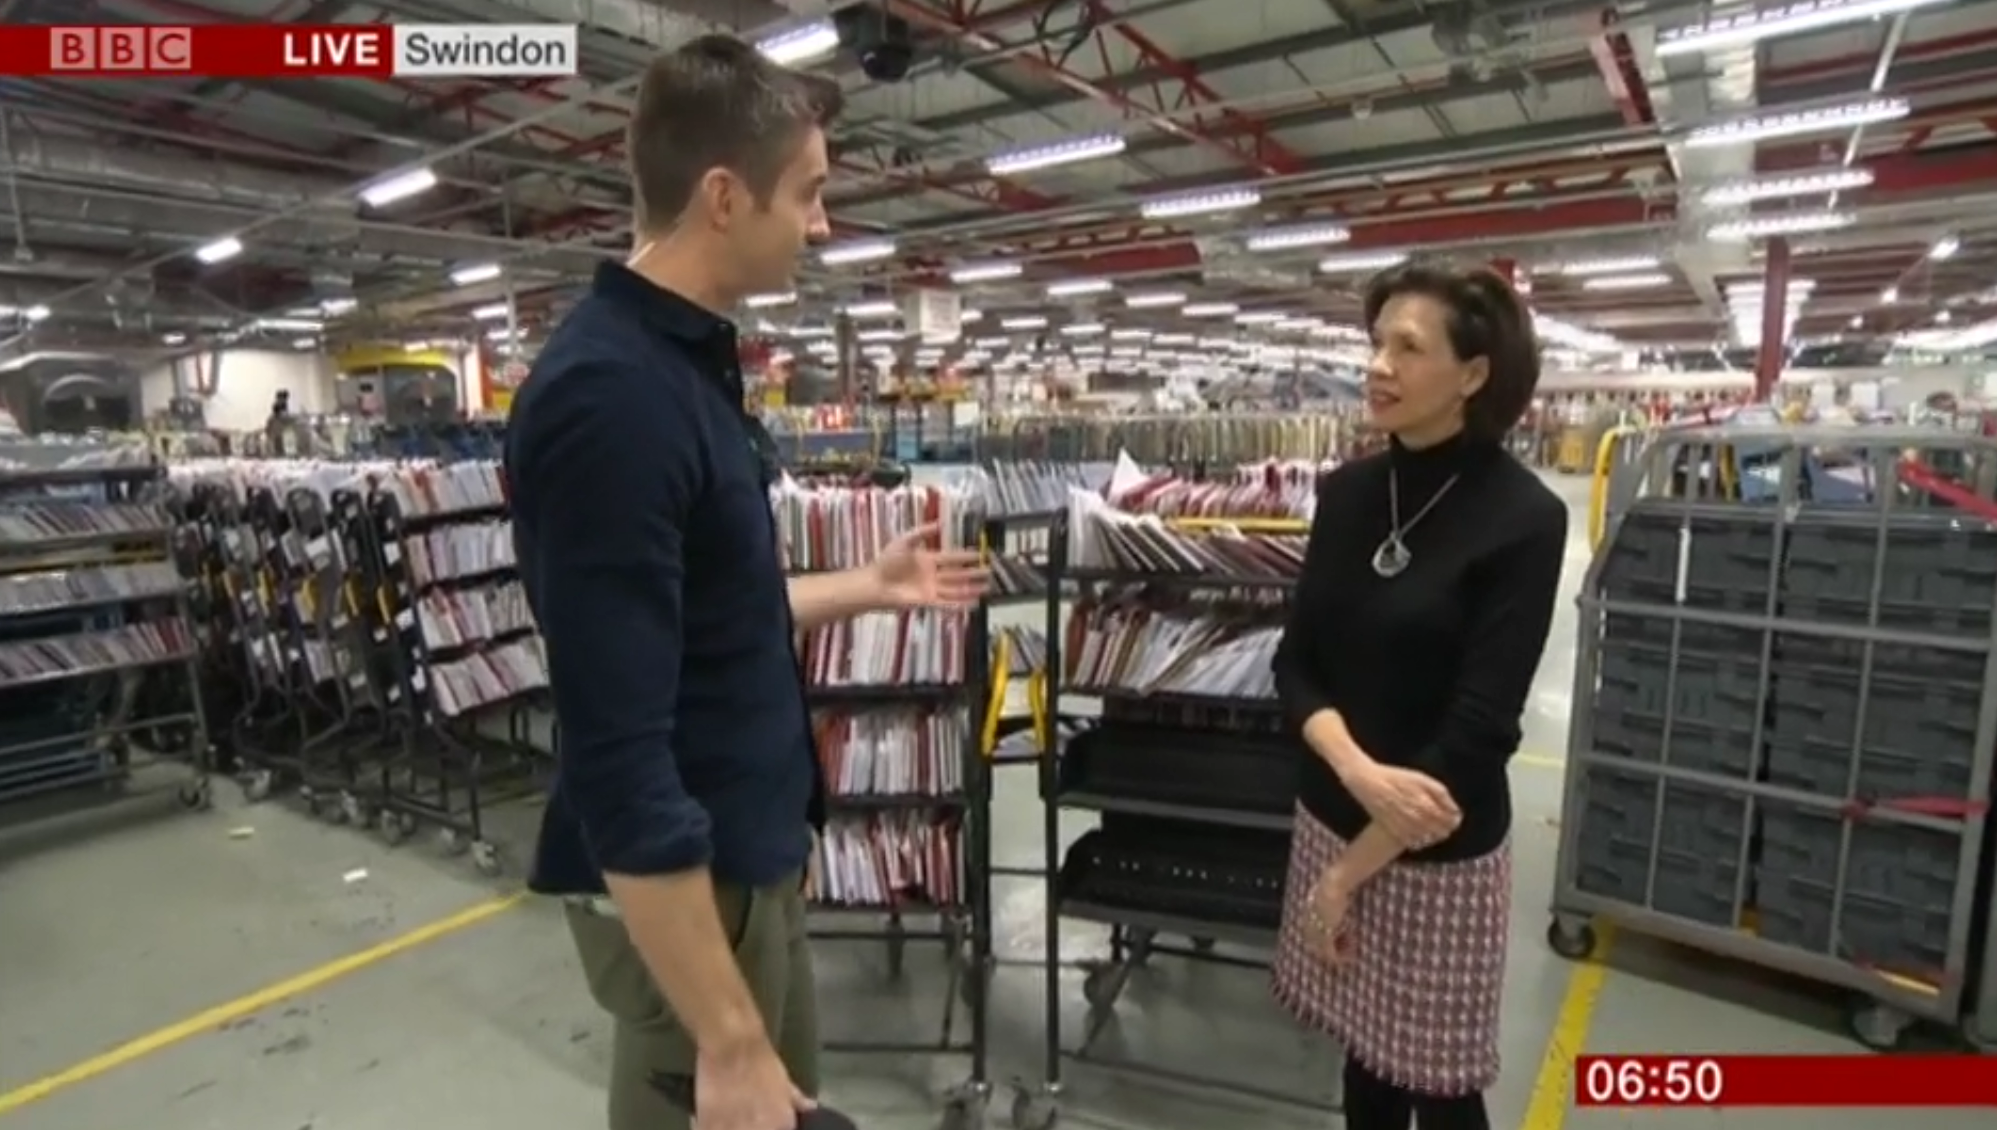 Above: The greeting card industry has a symbiotic relationship with Royal Mail as Amanda Fergusson, ceo of the GCA explained when she appeared on BBC news, filmed in a major sorting office in December 2018.